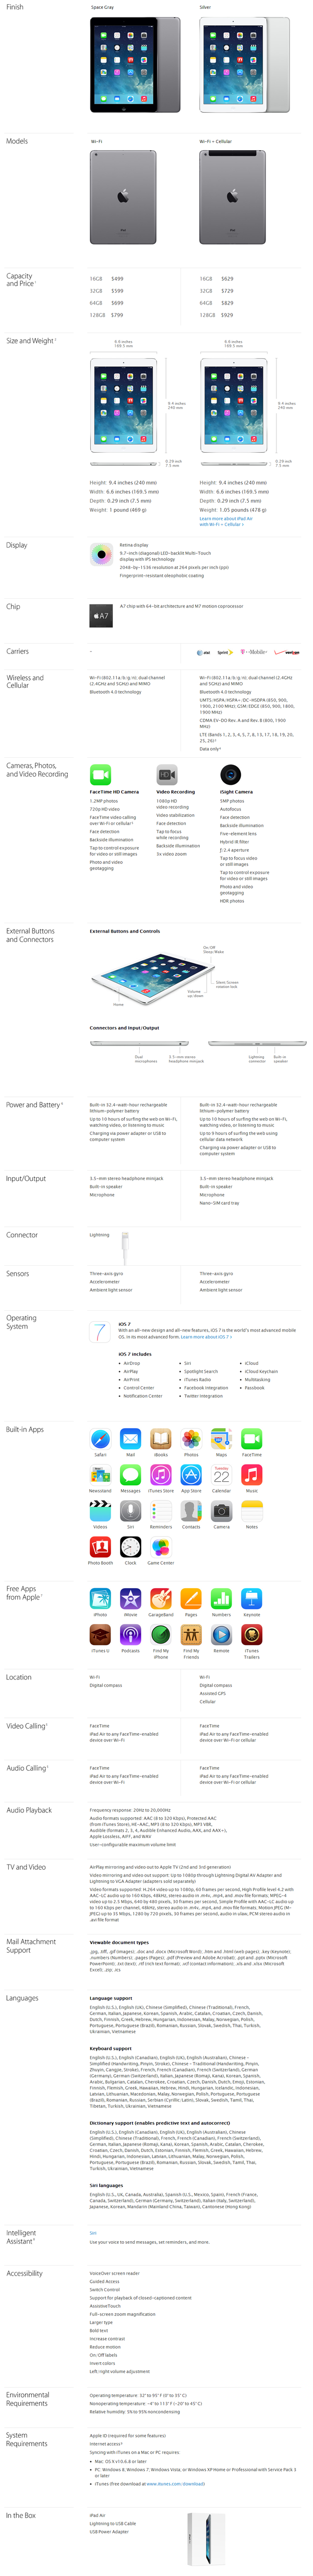 Apple iPad Air specs features